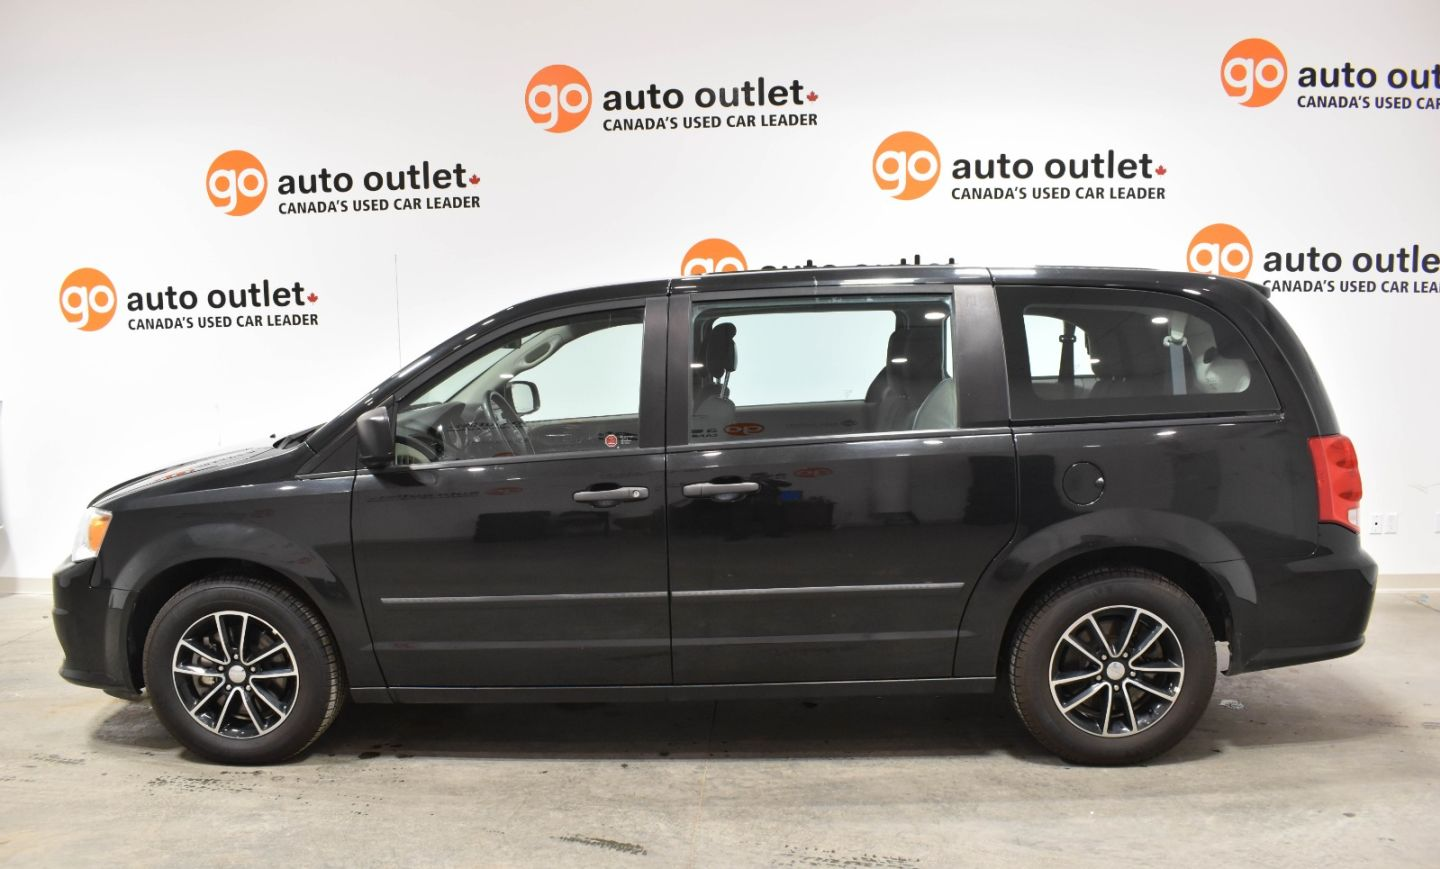 2015 Dodge Grand Caravan Canada Value Package for sale in Edmonton, Alberta